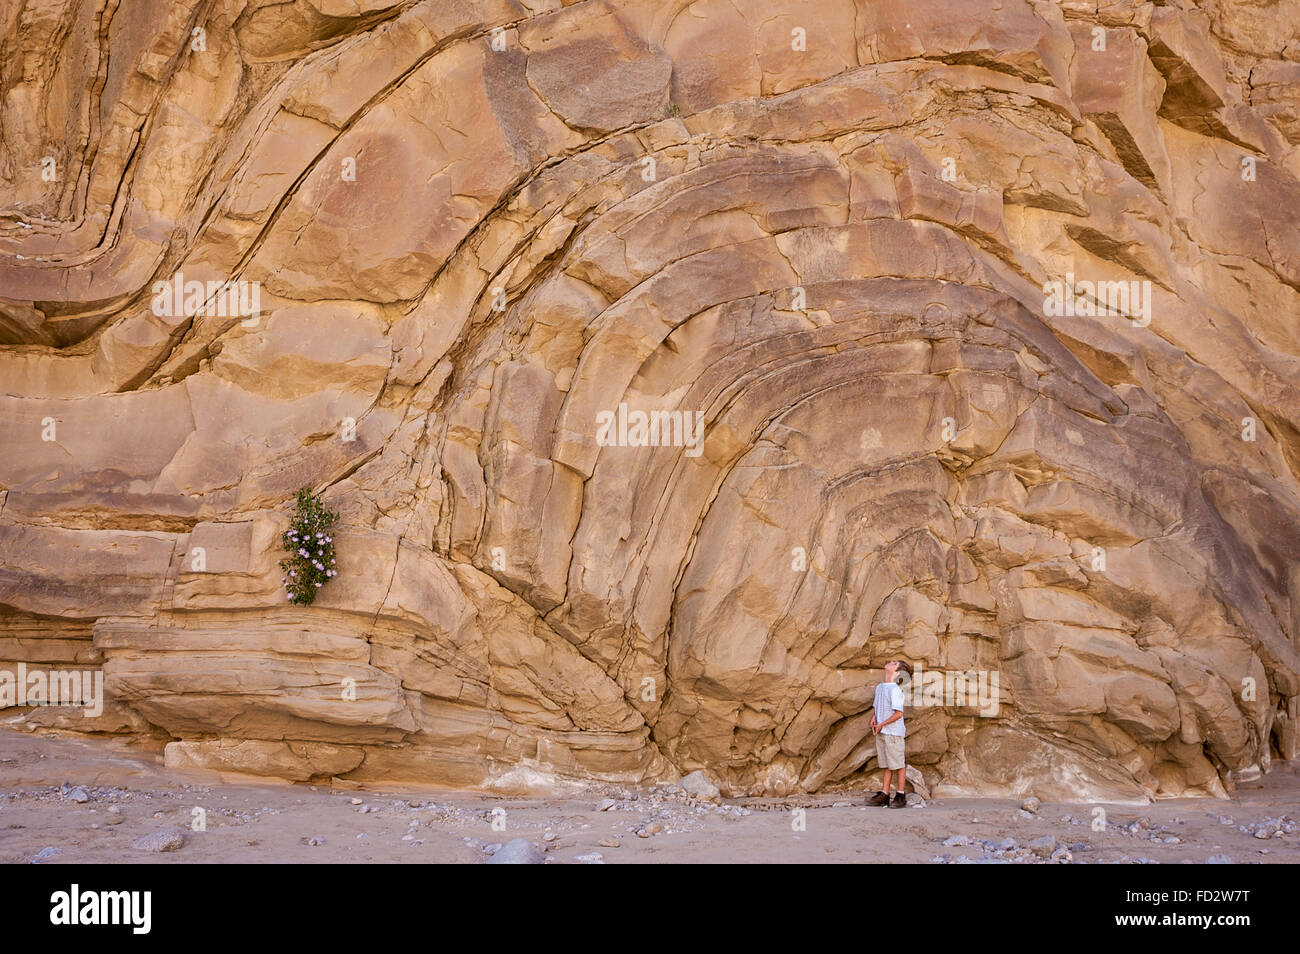 Young boy looking up at rock formation in Fish Creek Wash, Anza-Borrego Desert State Park, California, USA. - Stock Image